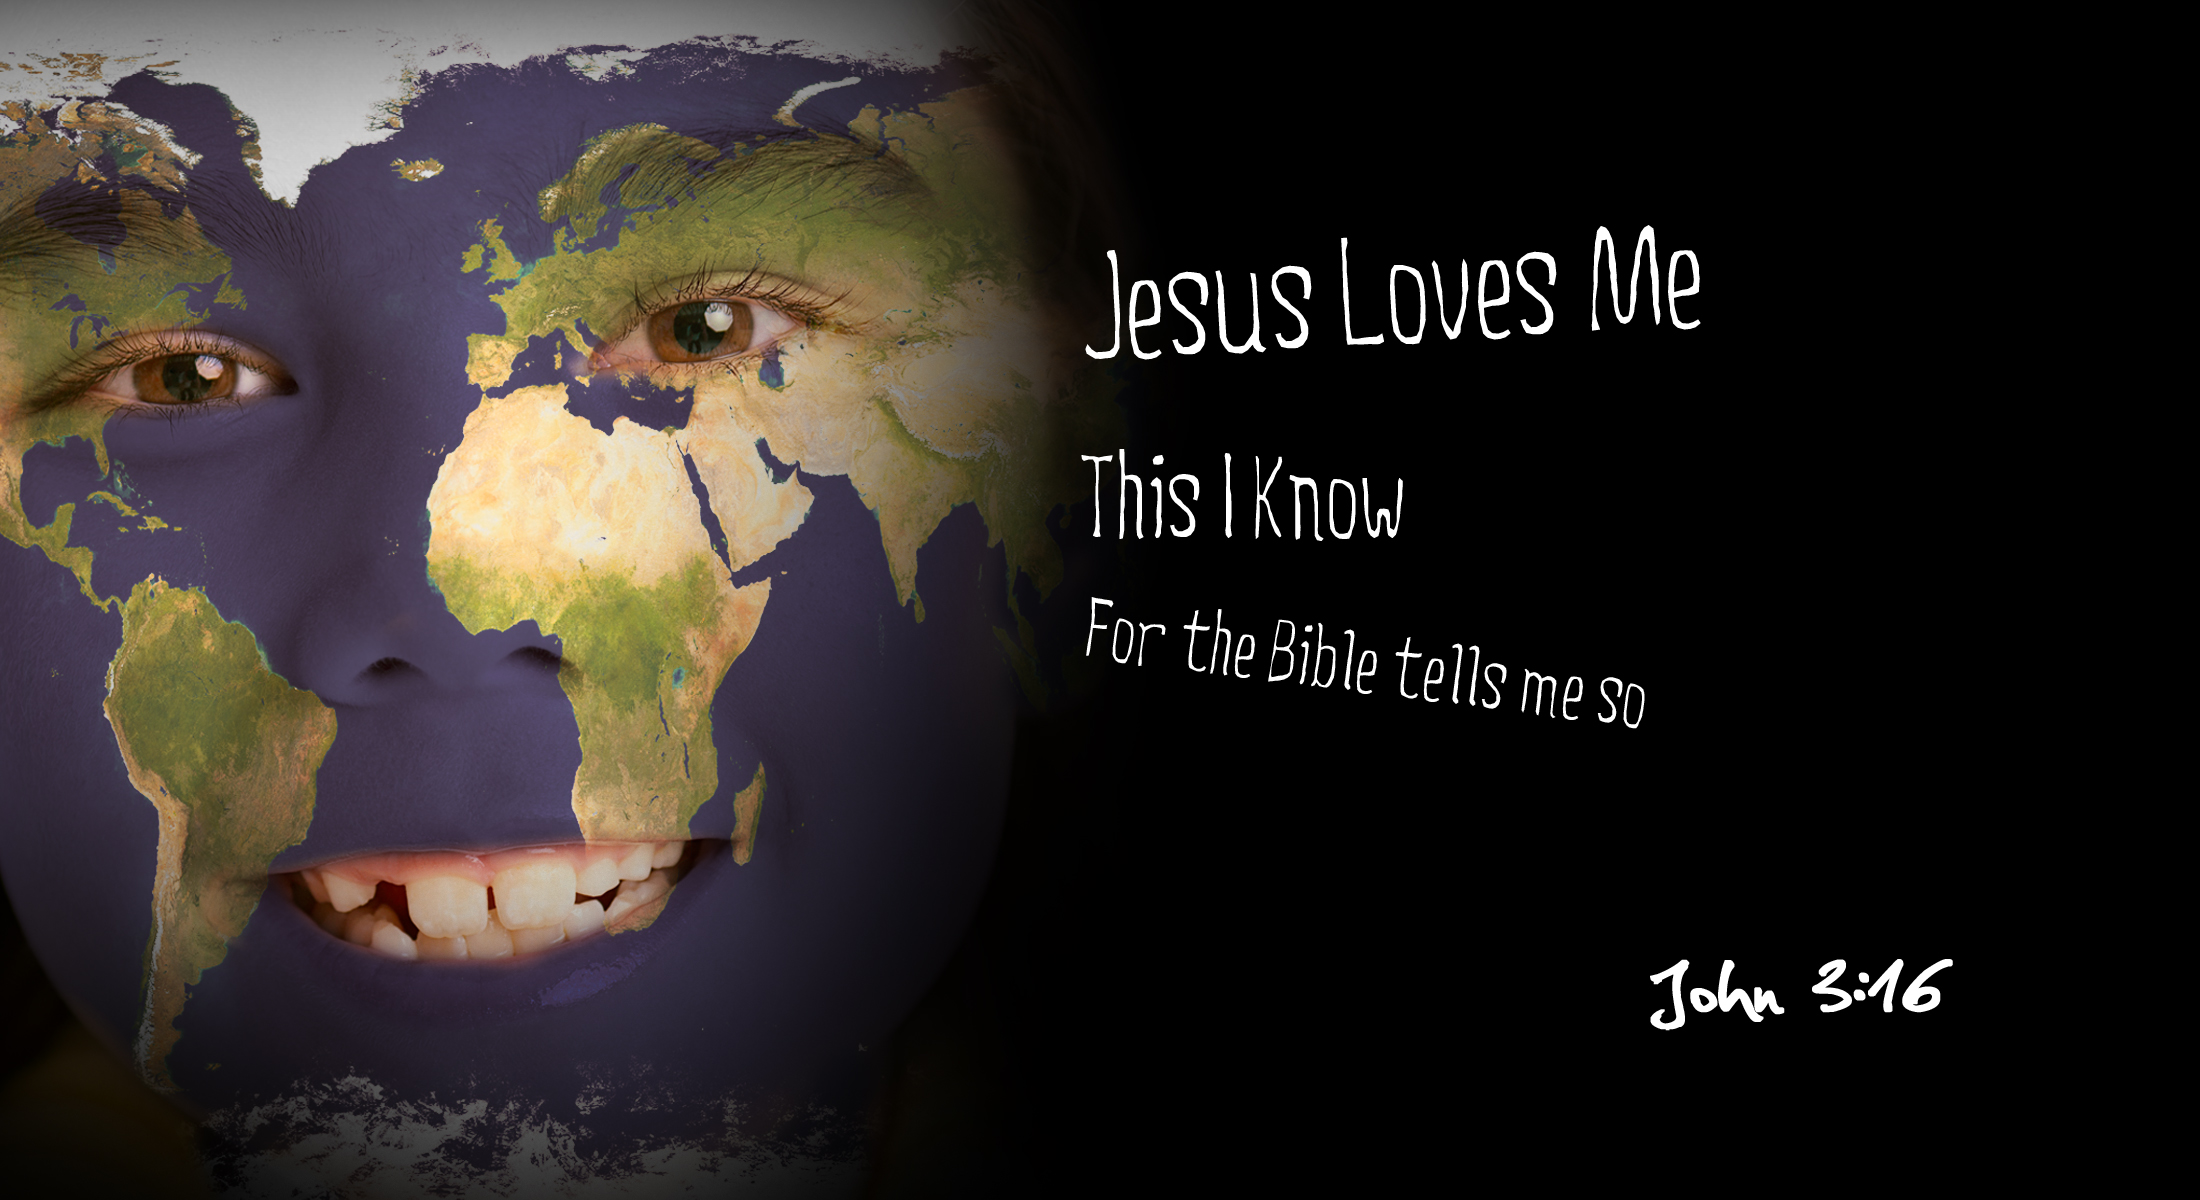 47 Jesus Loves Me Wallpaper on WallpaperSafari